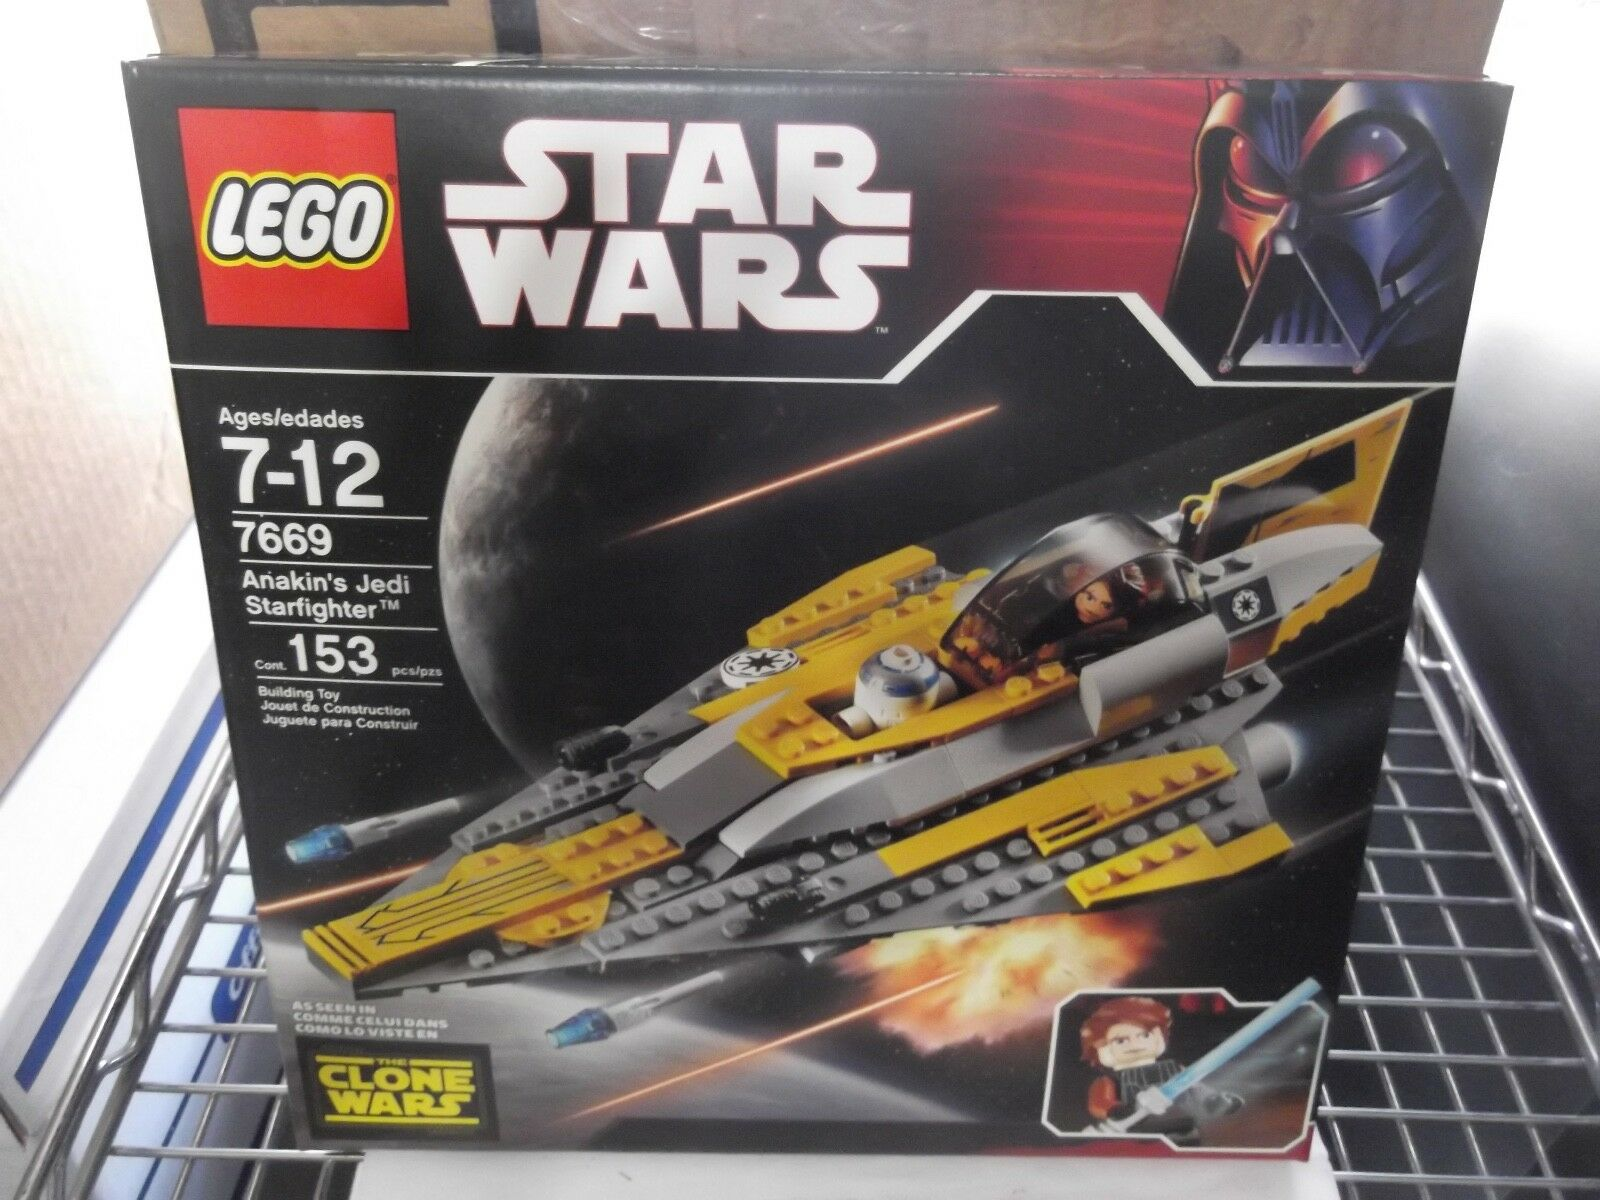 Lego star wars 7669 Anakin's Jedi Starfighter